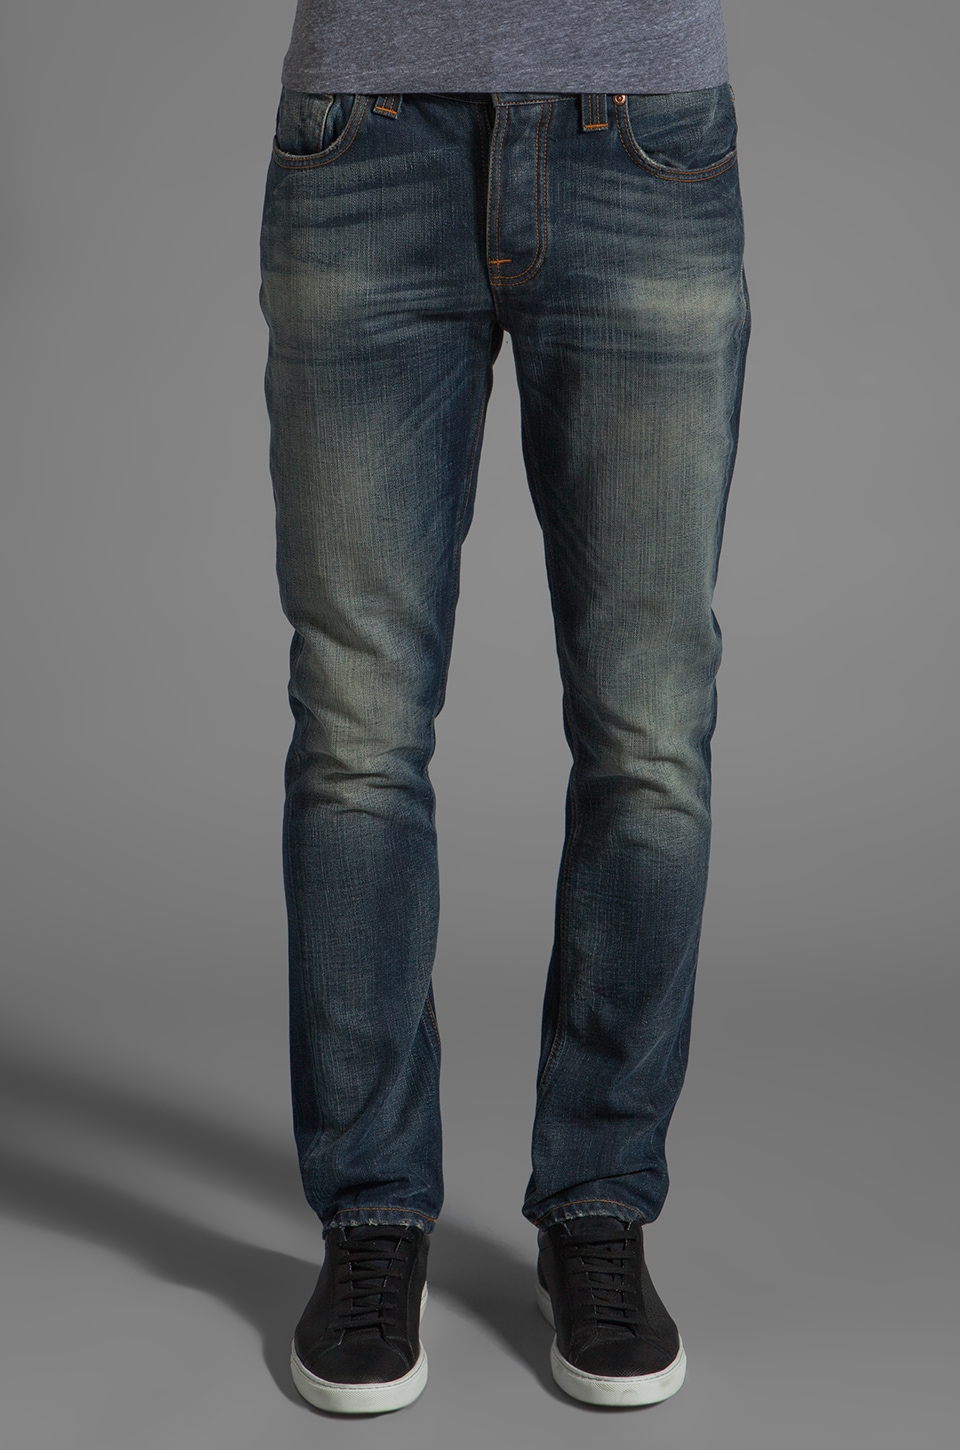 Nudie Jeans Grim Tim in Organic Lovely Dust